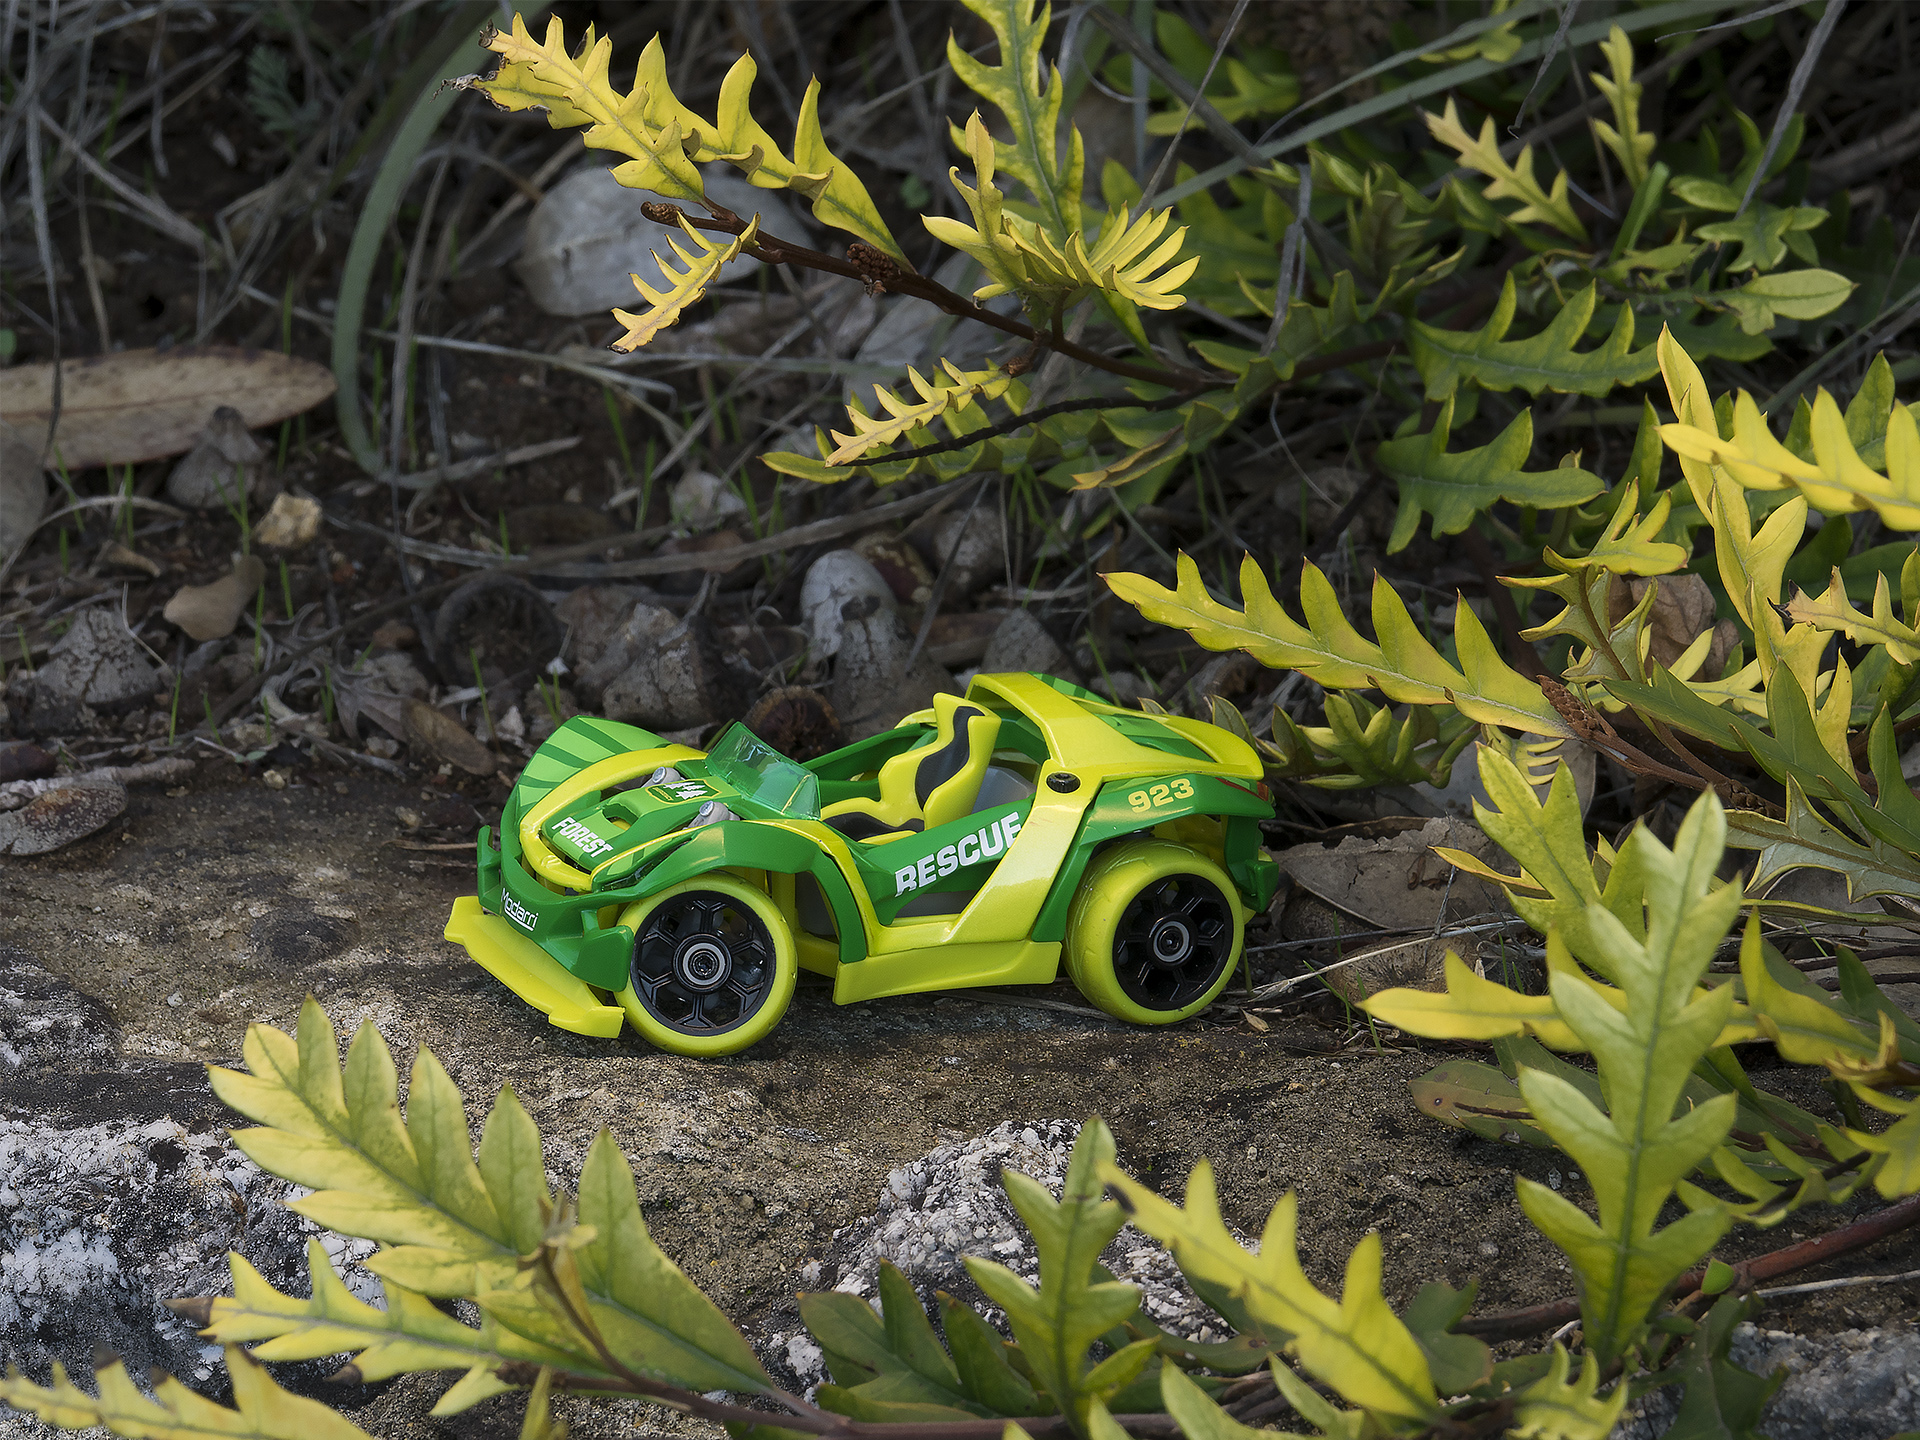 C1 Forest rescue green car nature lifestyle - compressed